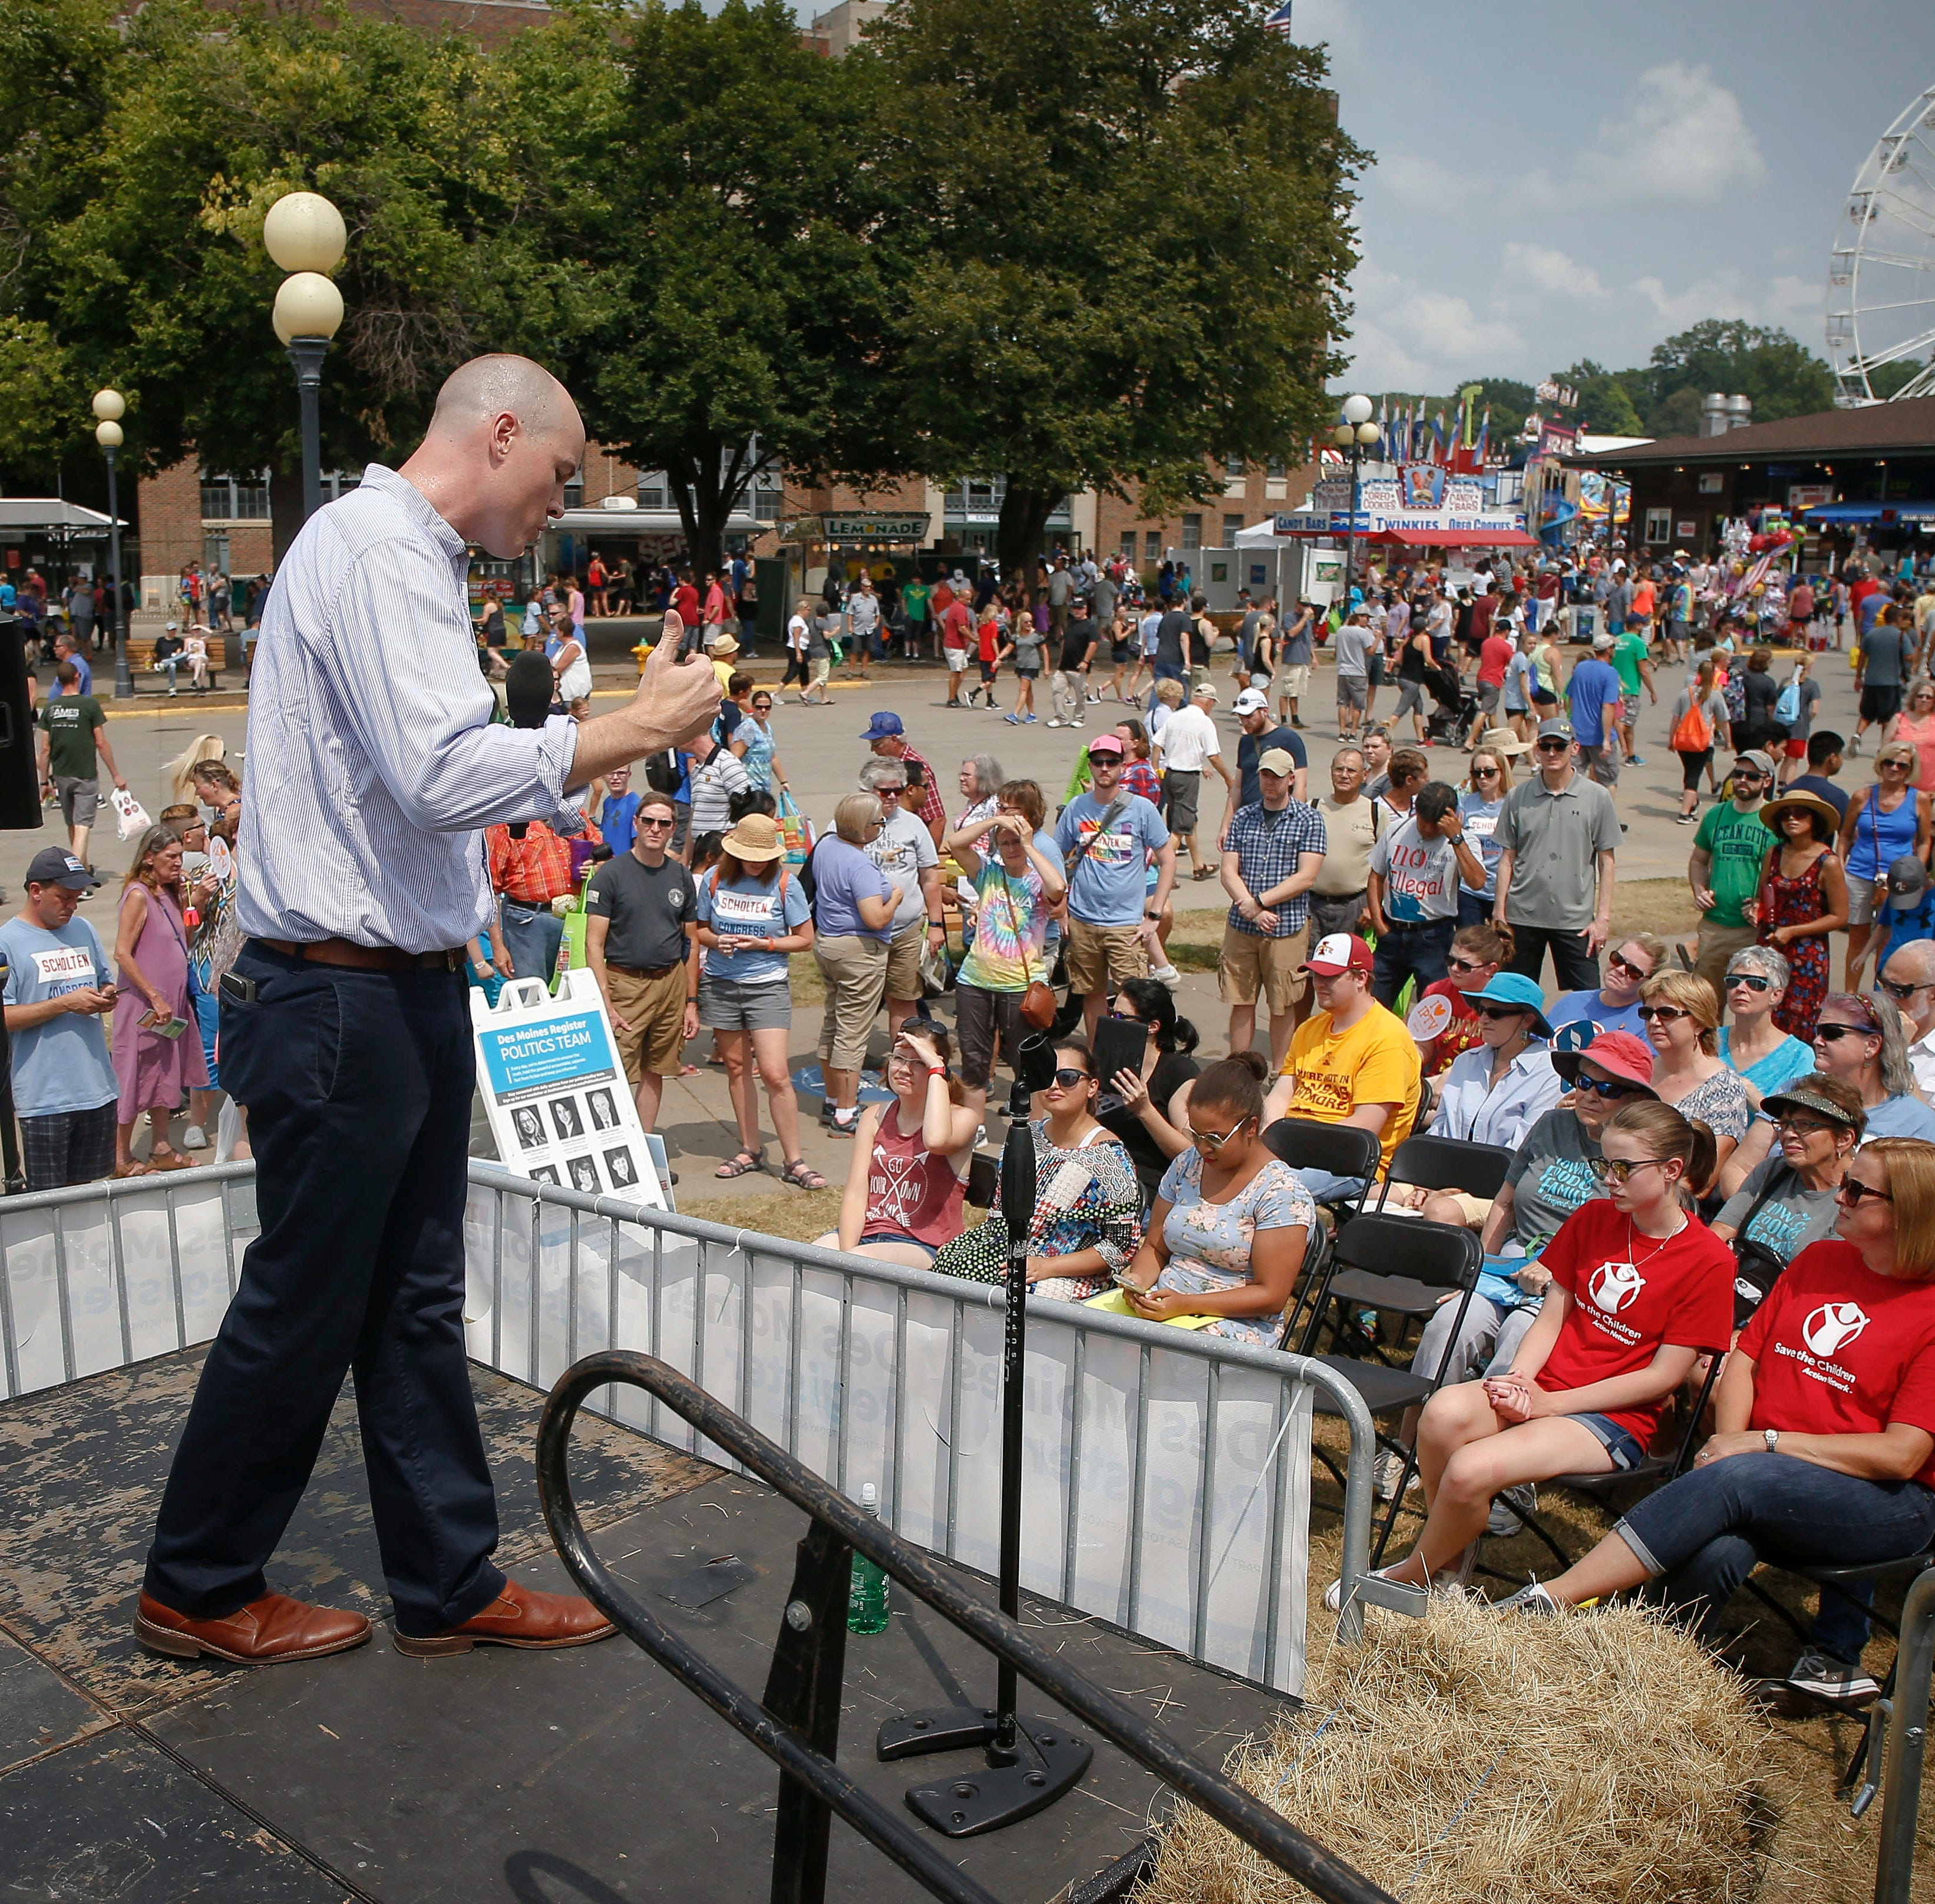 Democratic candidate J.D. Scholten focuses on tariffs, agriculture at Soapbox speech